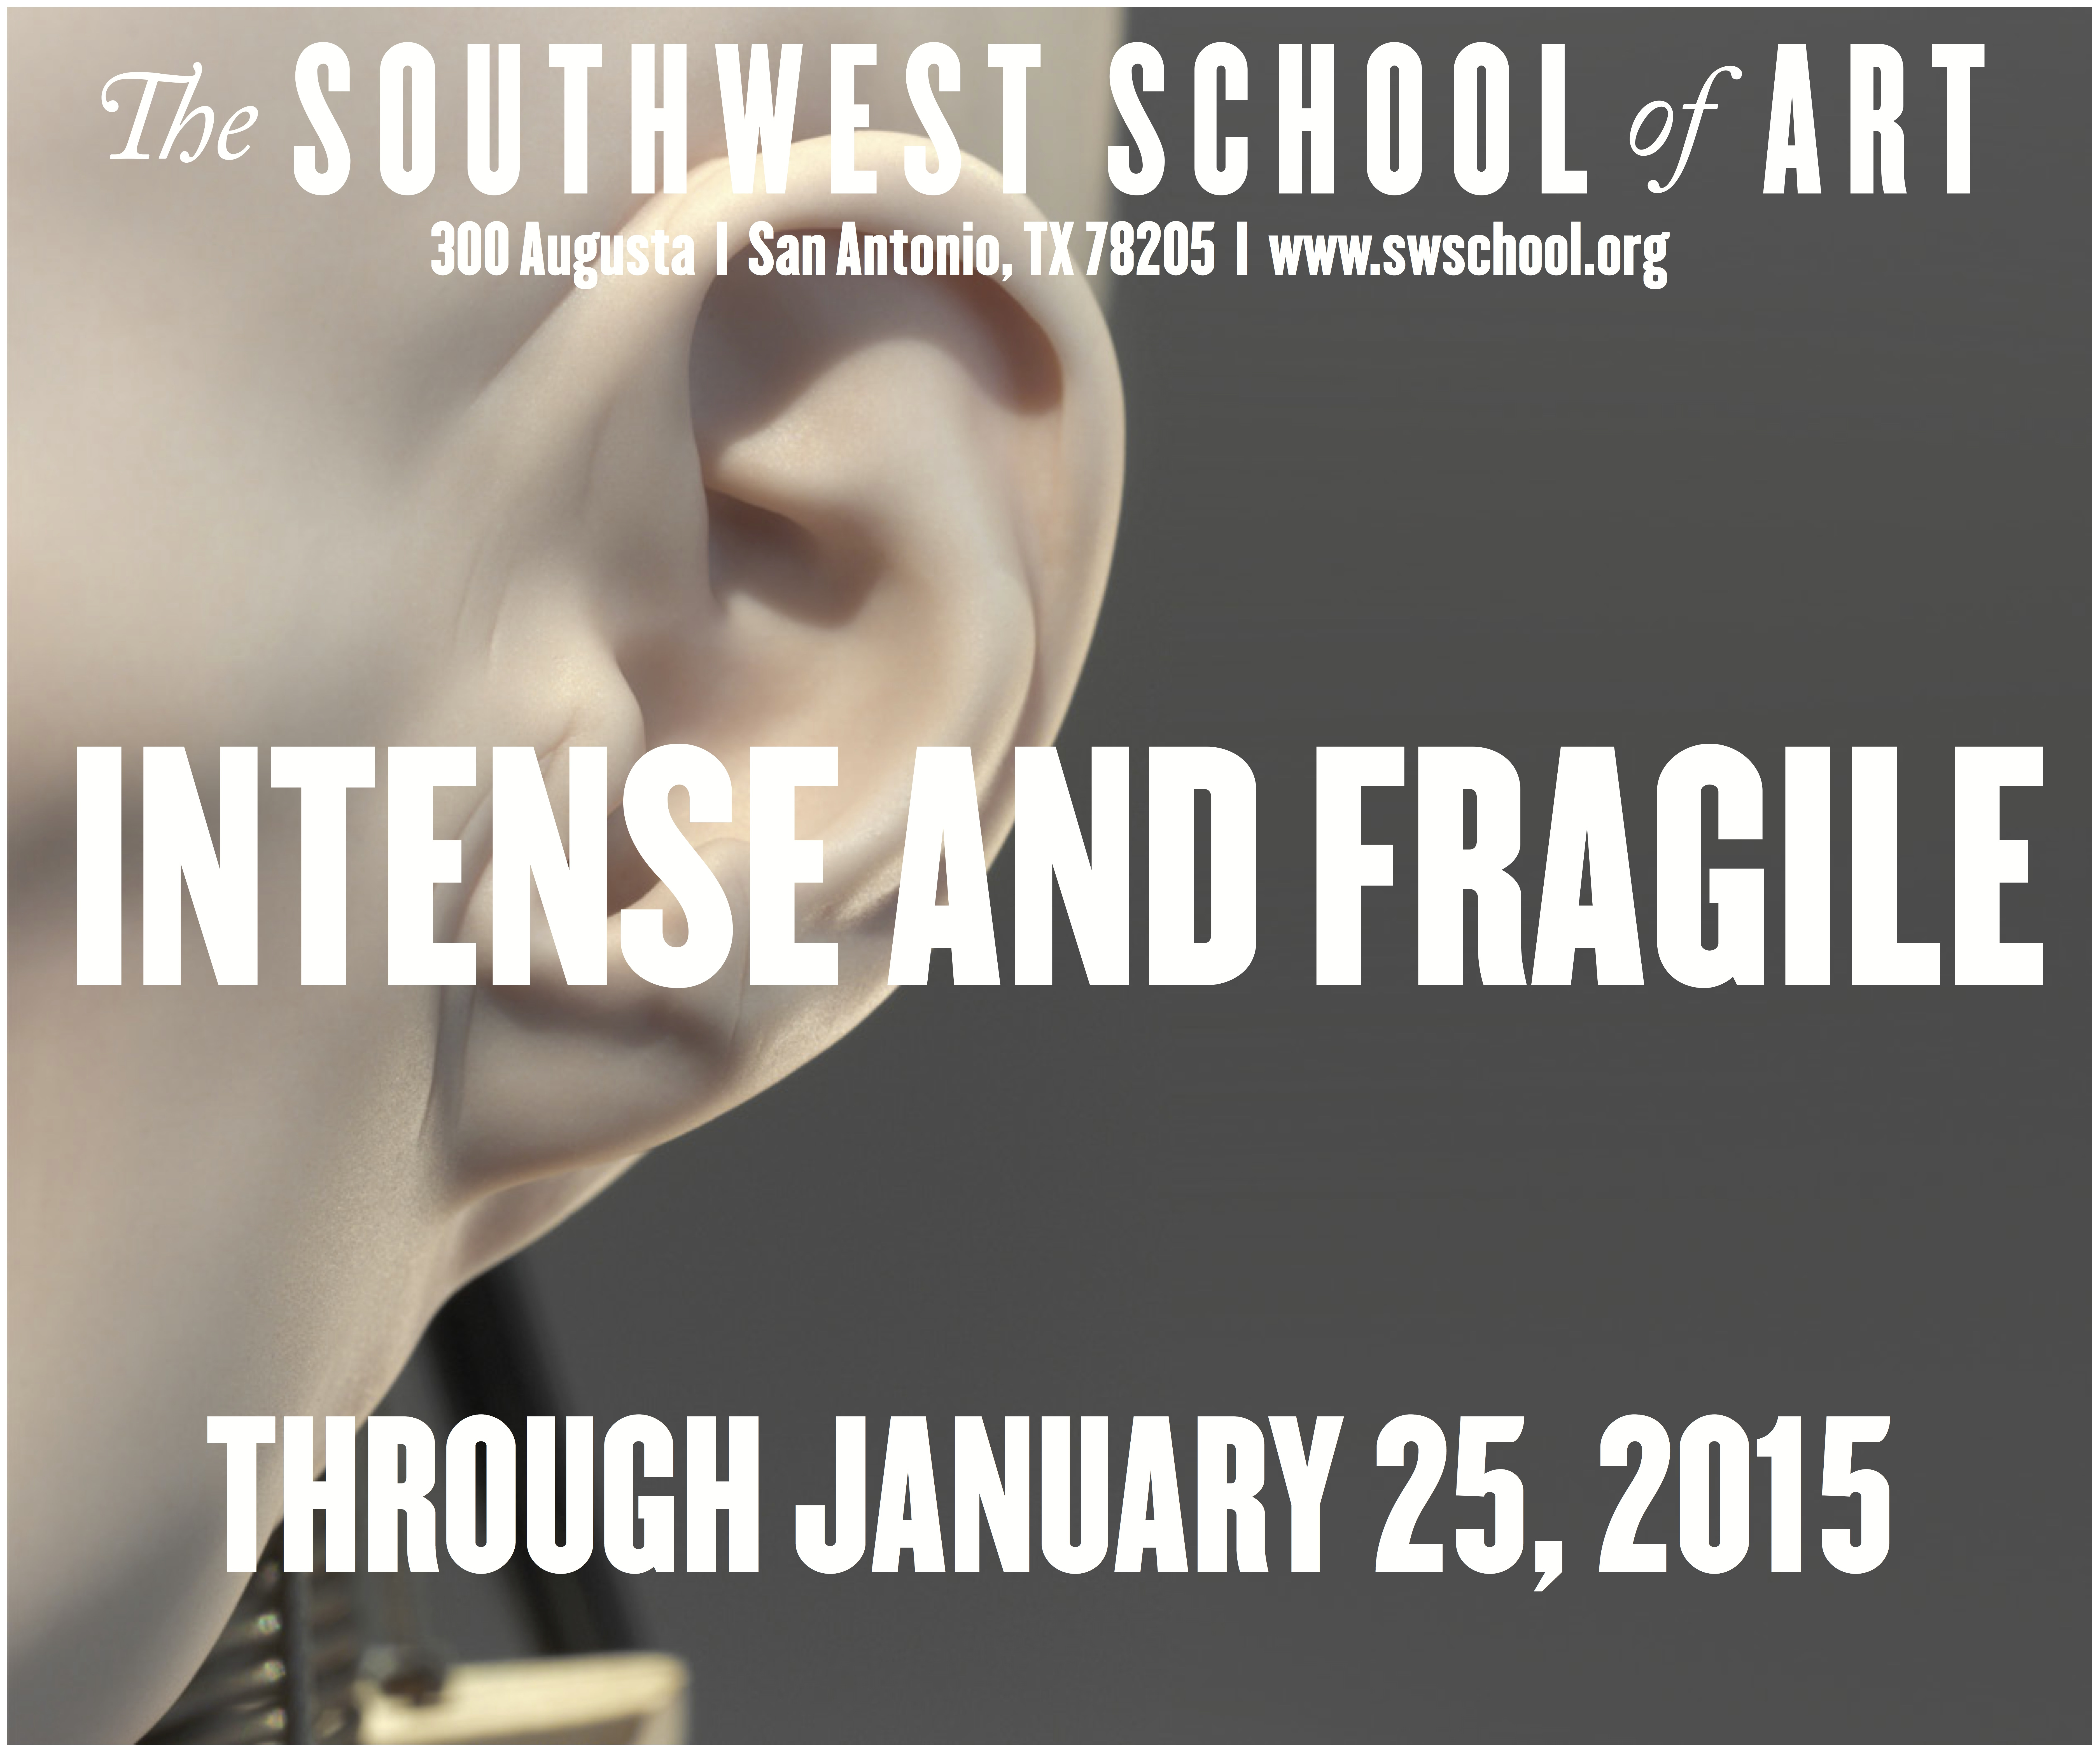 Southwest School of Art: Intense and Fragile